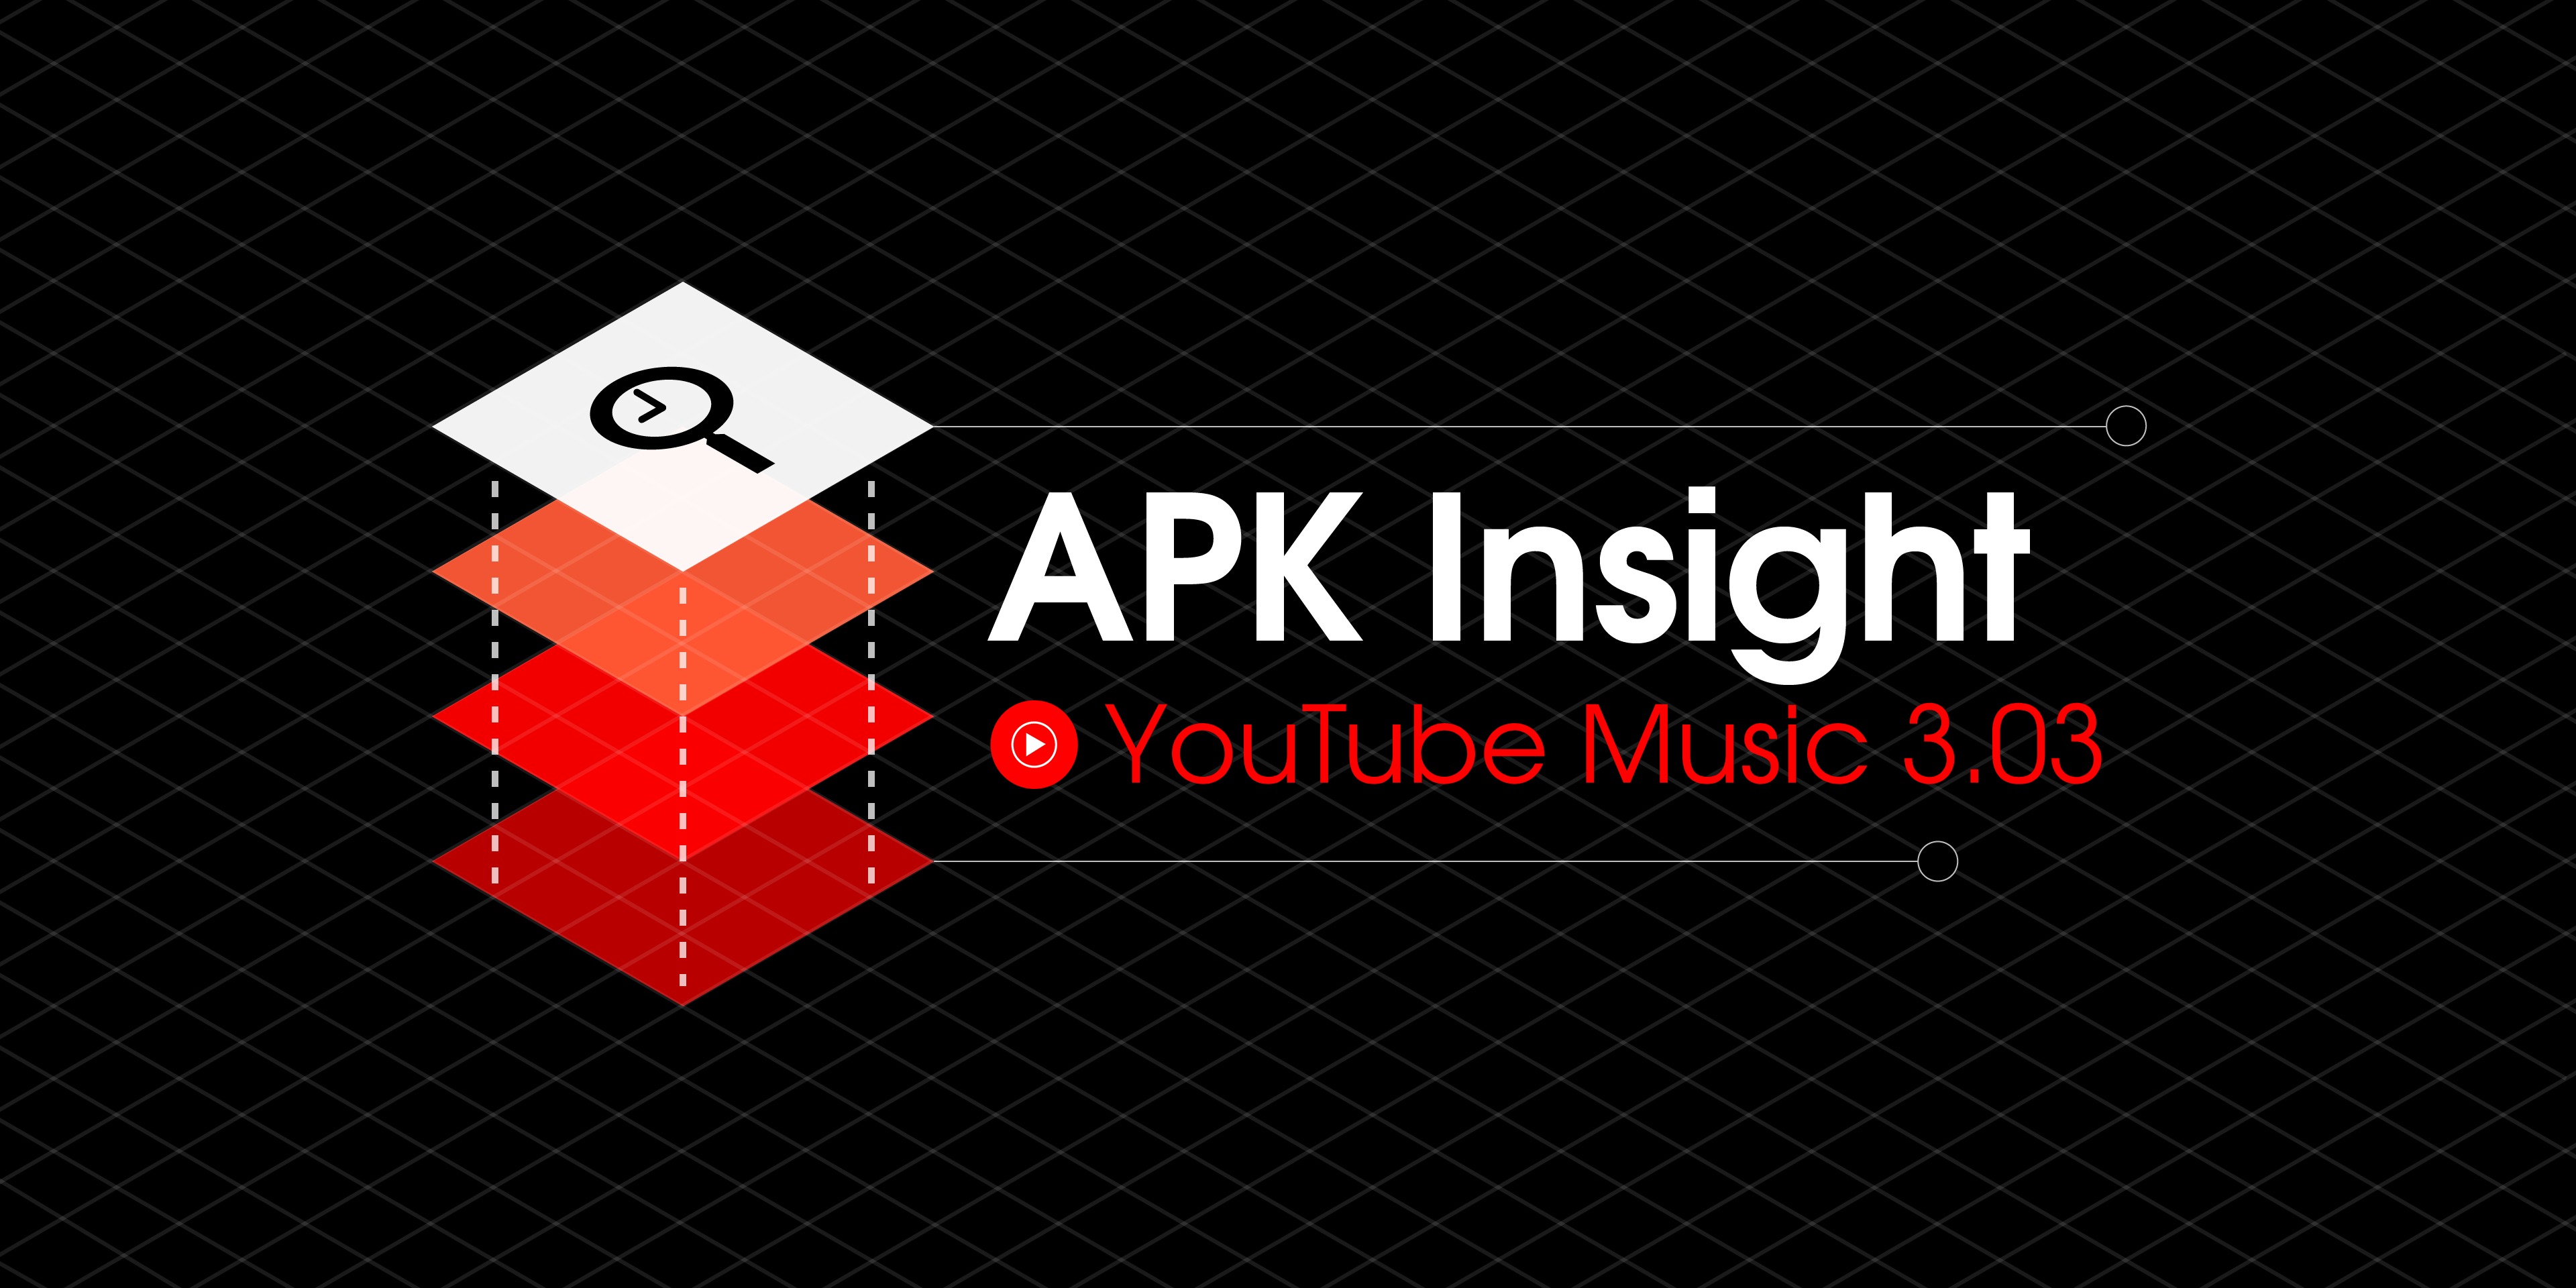 YouTube Music 3.03 adds Android Auto support, continues work on playing on-device files [APK Insight]